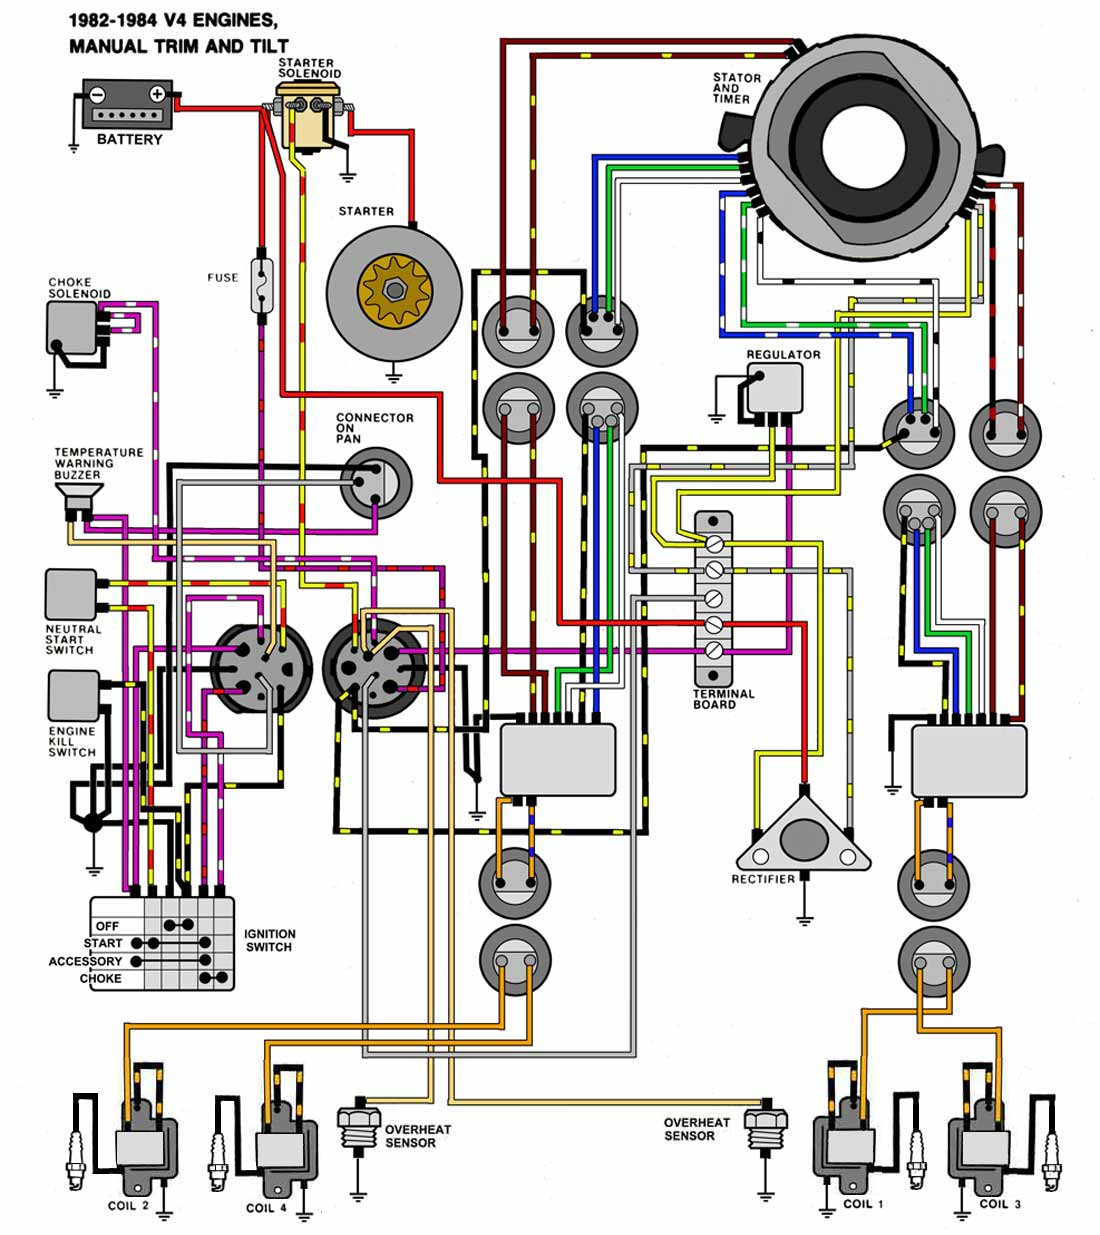 82_84_V4_NOTNT evinrude ignition wiring diagram evinrude 40 hp outboard diagrams  at nearapp.co